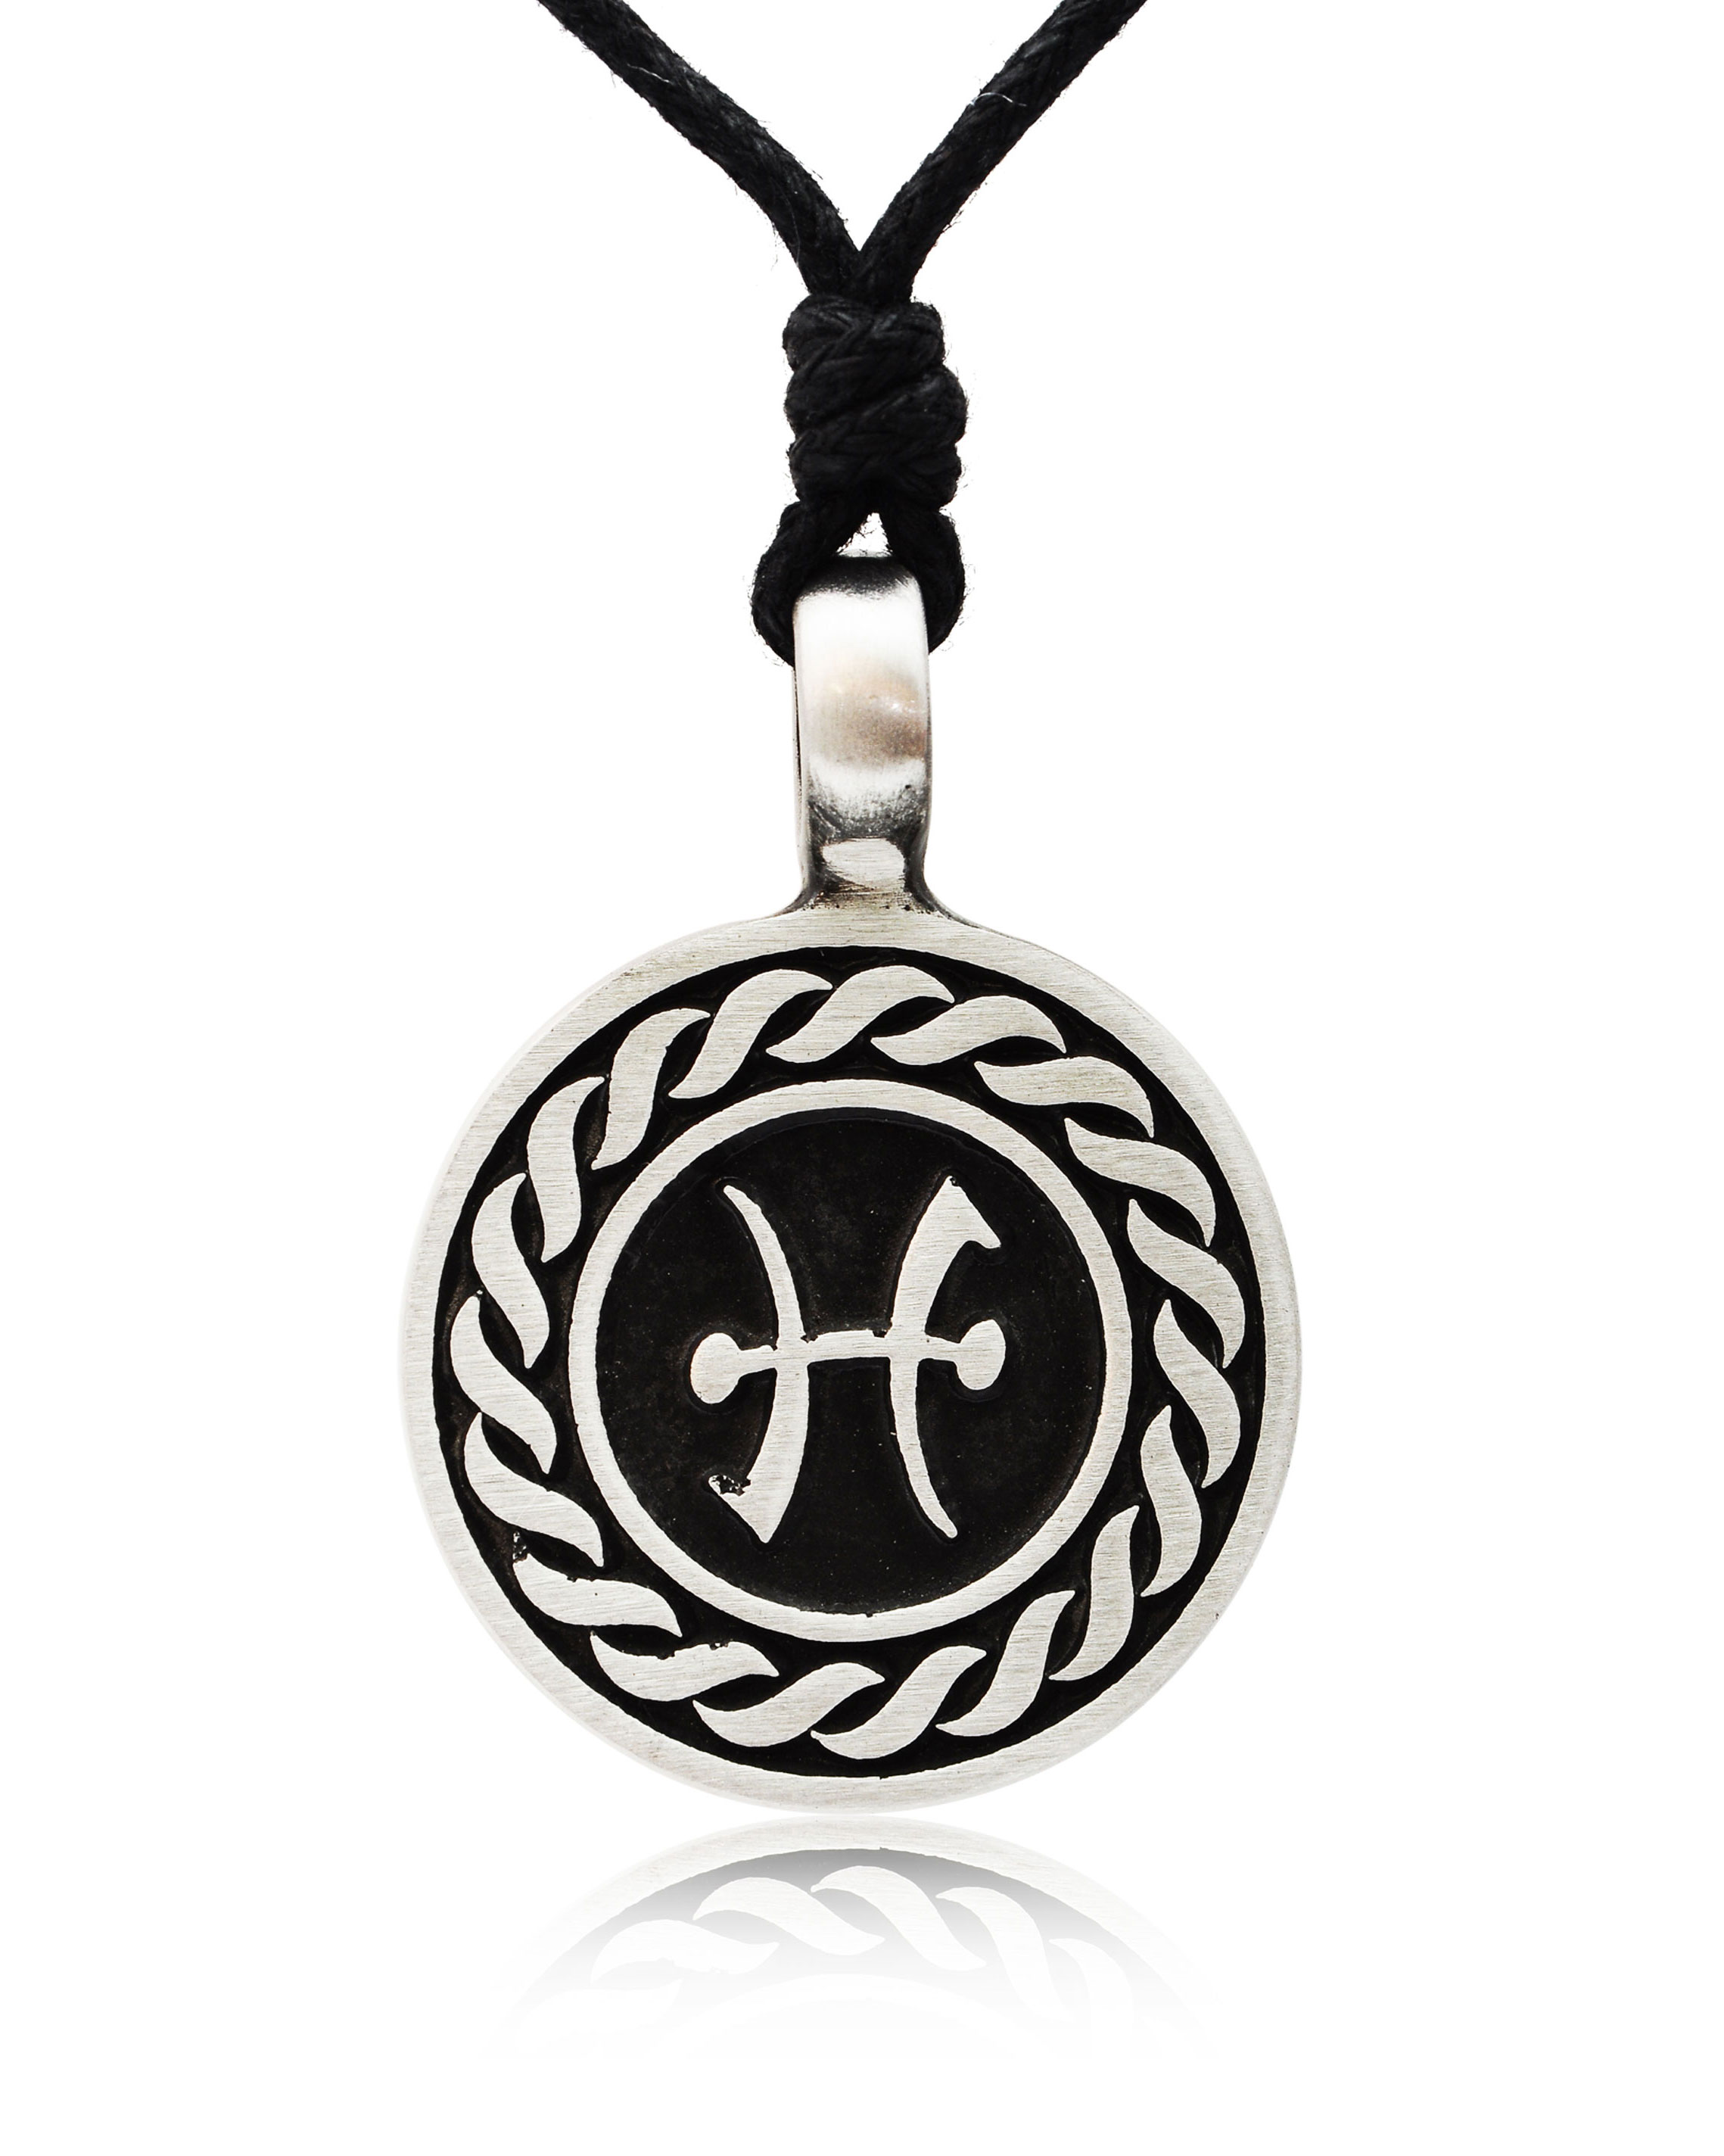 Astrology Sign Horoscope Silver Pewter Charm Necklace ... - photo#27